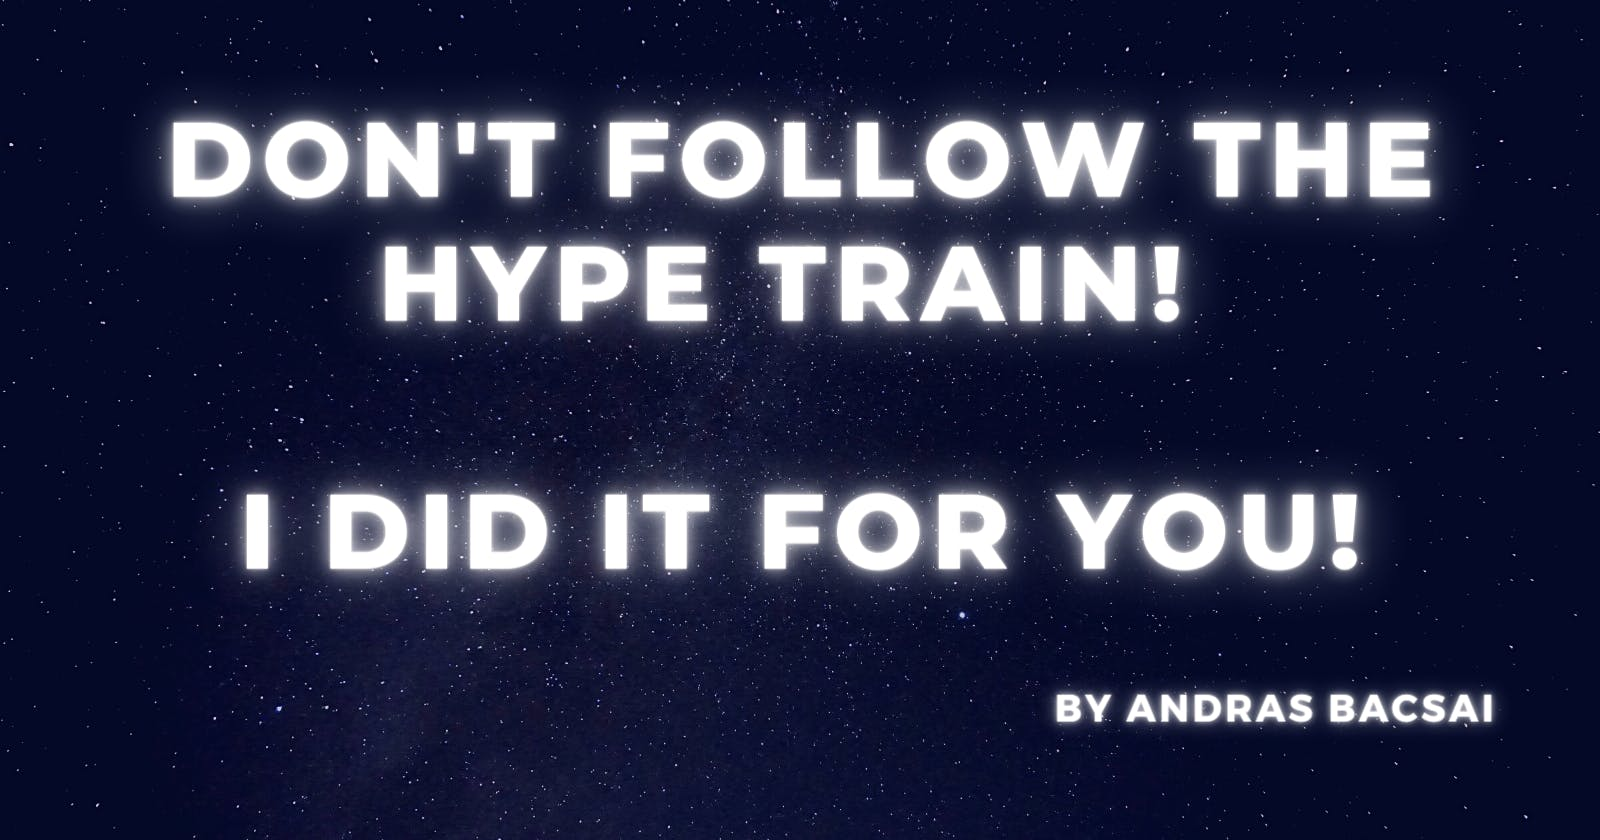 Don't follow the hype train - I did it for you!